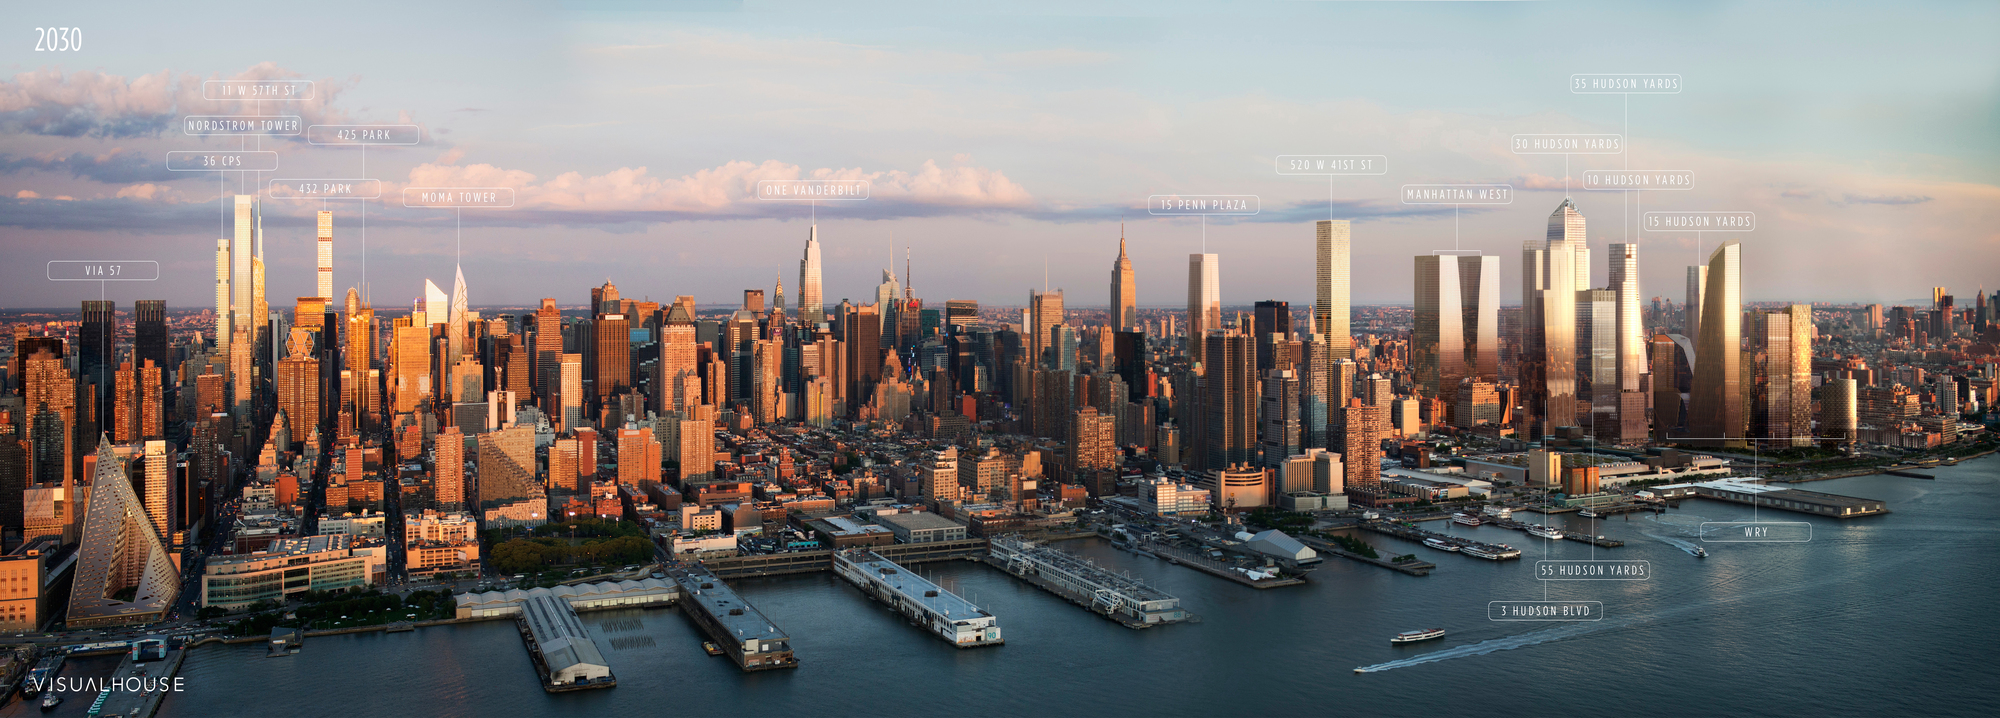 New York 2030: This Annotated Visualization Shows Us the Manhattan of the Future